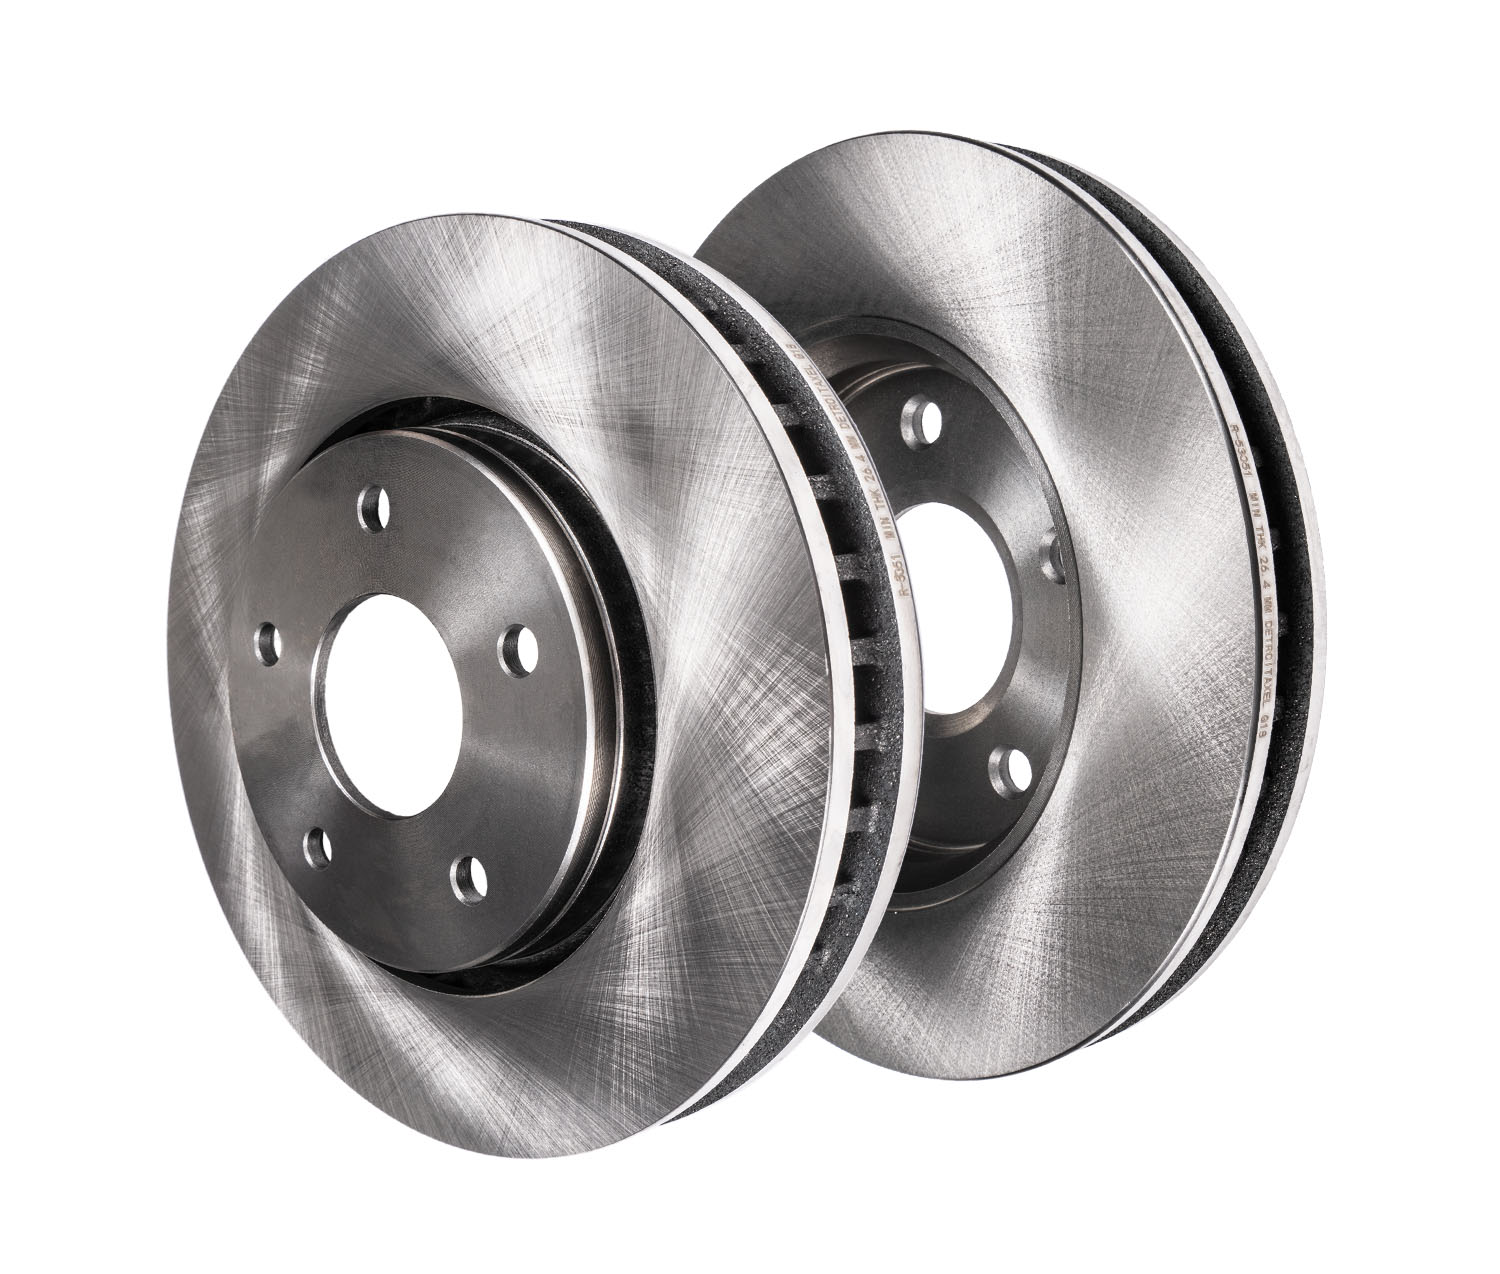 330mm Front Disc Replacement Brake Rotors - 2006 BMW 330i, 330xi - 5 LUG